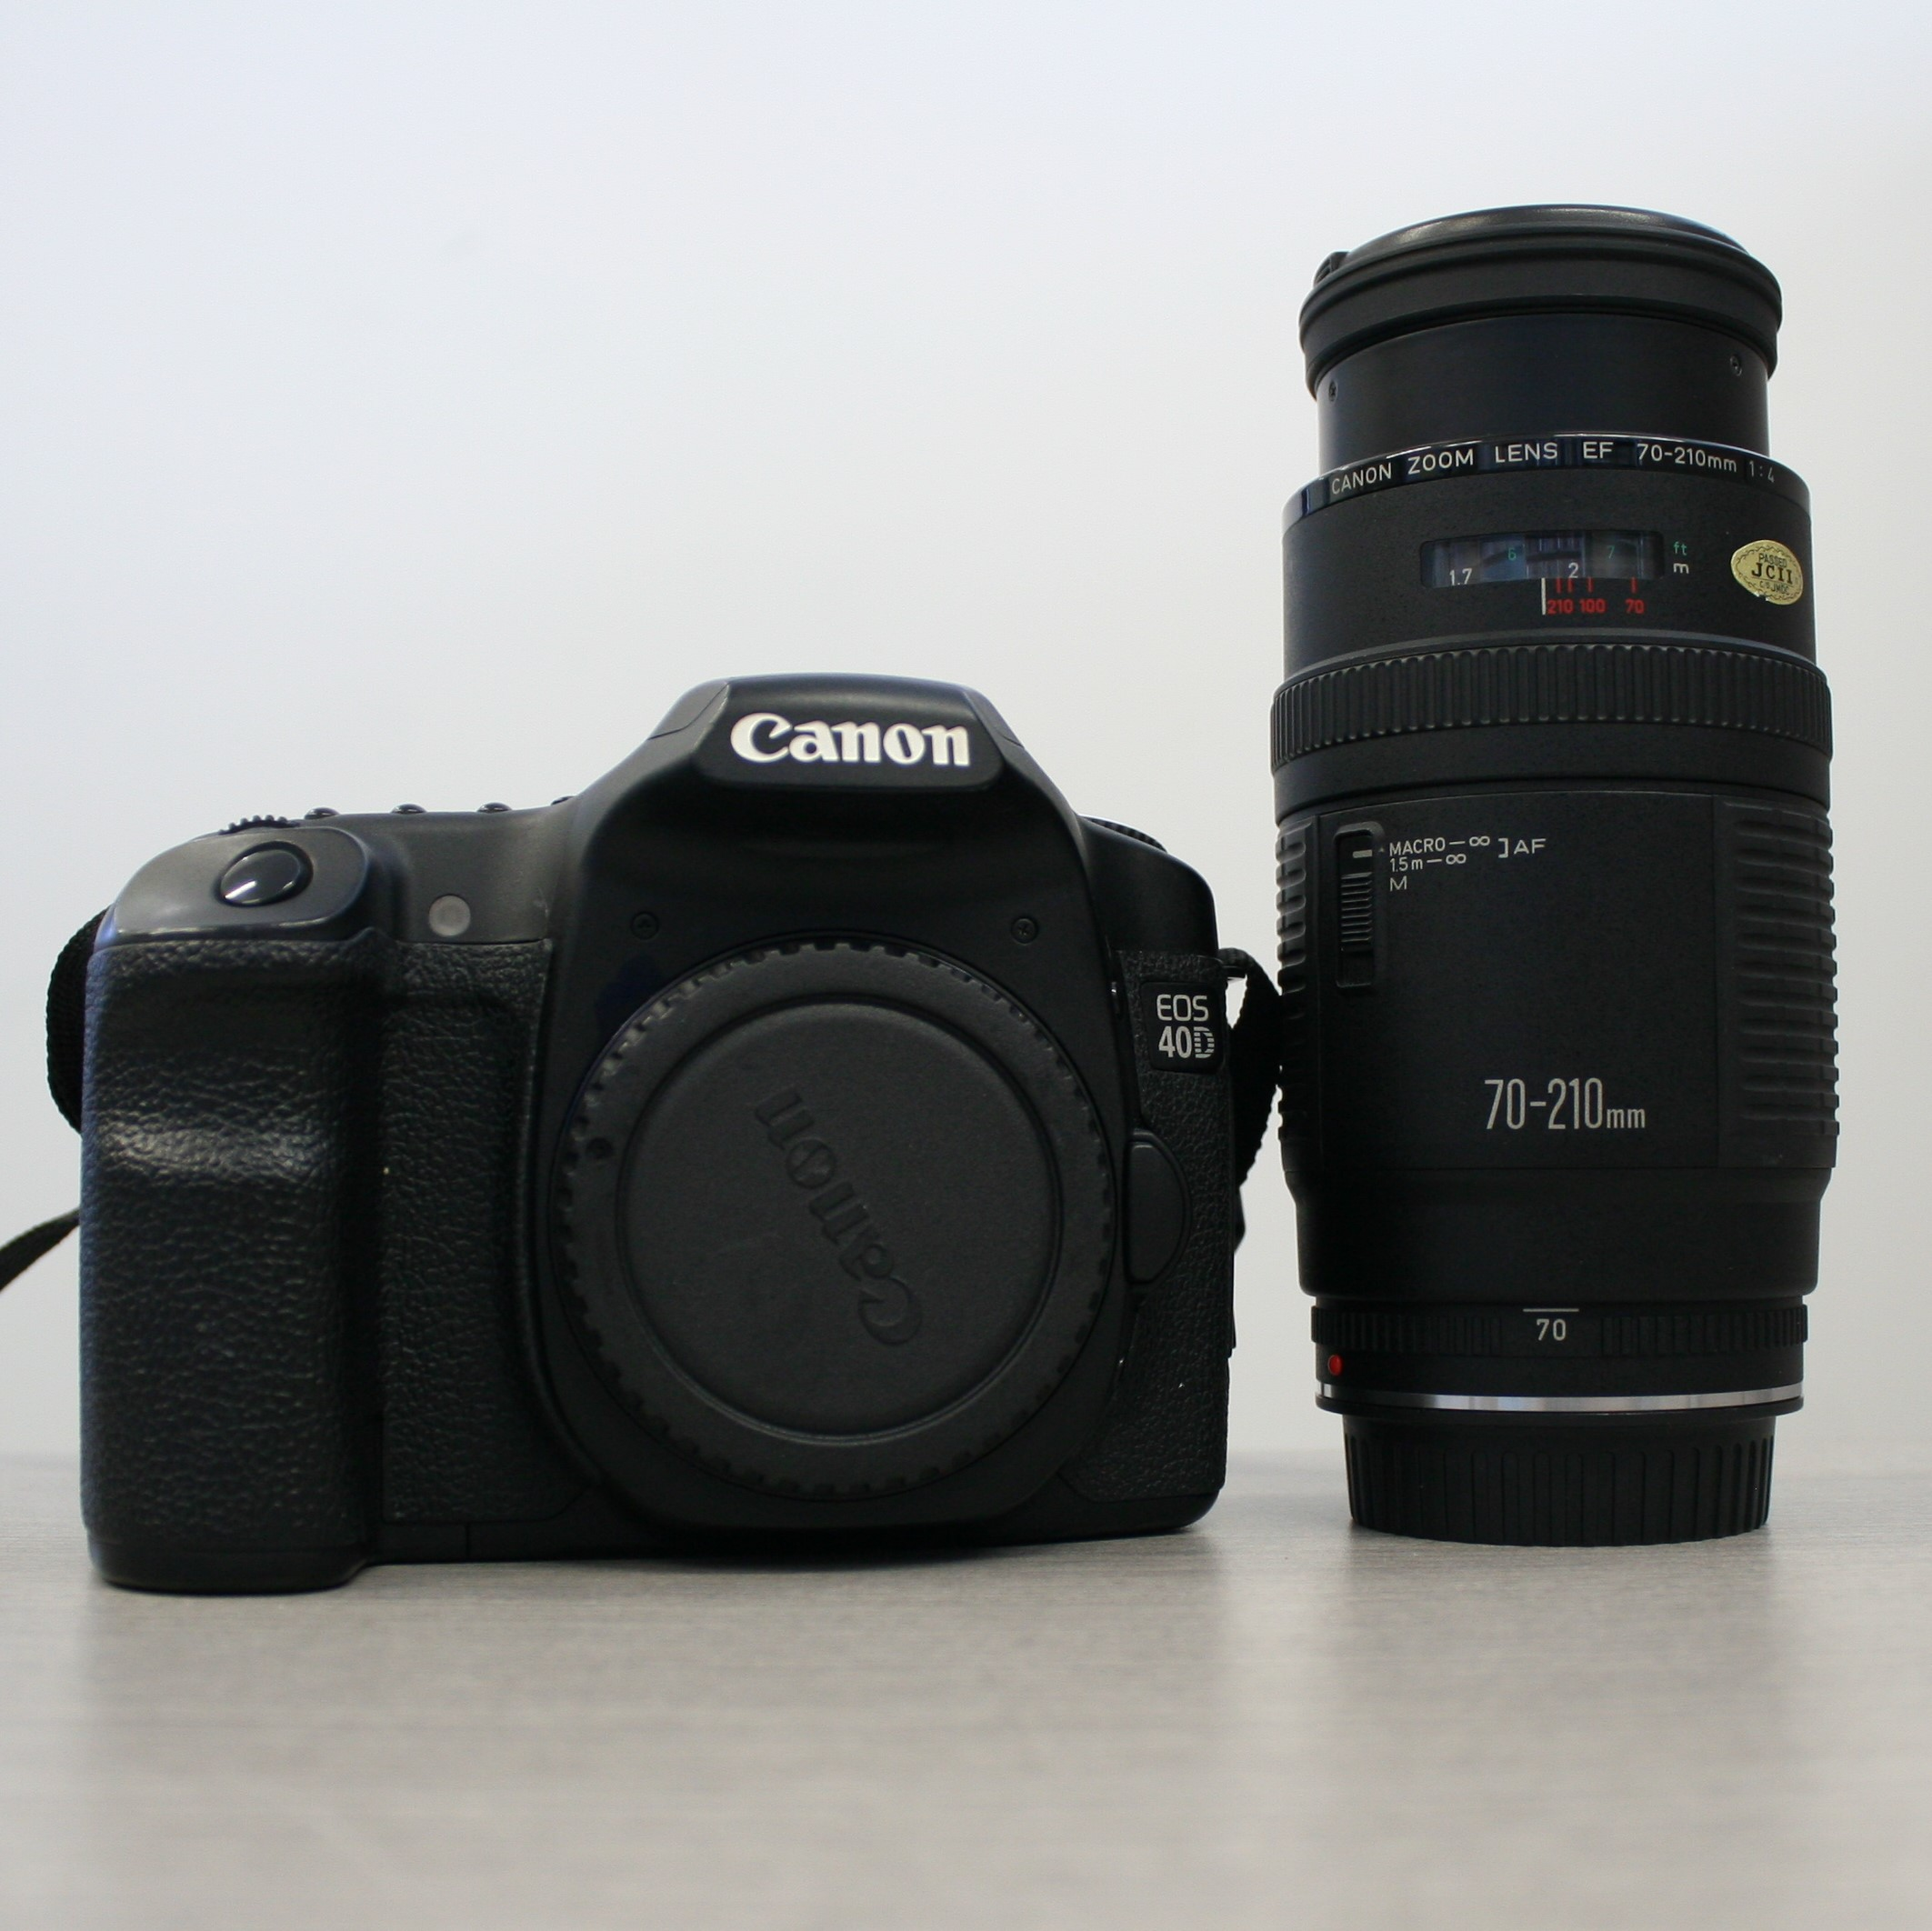 Canon EOS 40D with 70-120mm lens